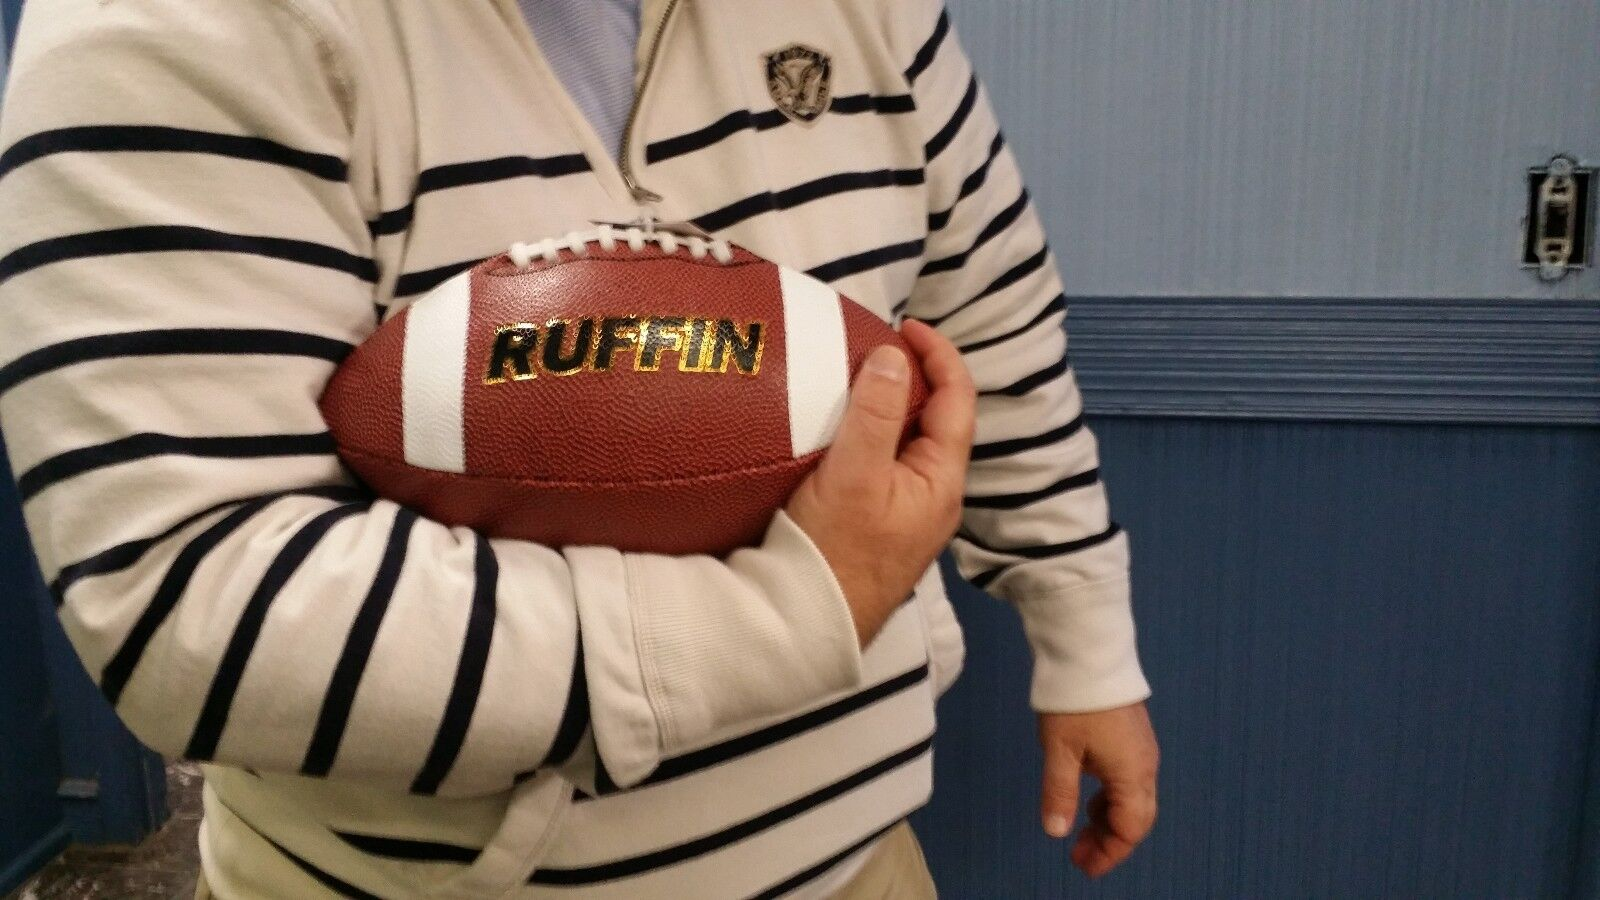 LOT OF 8 RUFFIN FOOTBALL LEATHER GRAIN COLLEGE HIGH SCHOOL PRO BALL